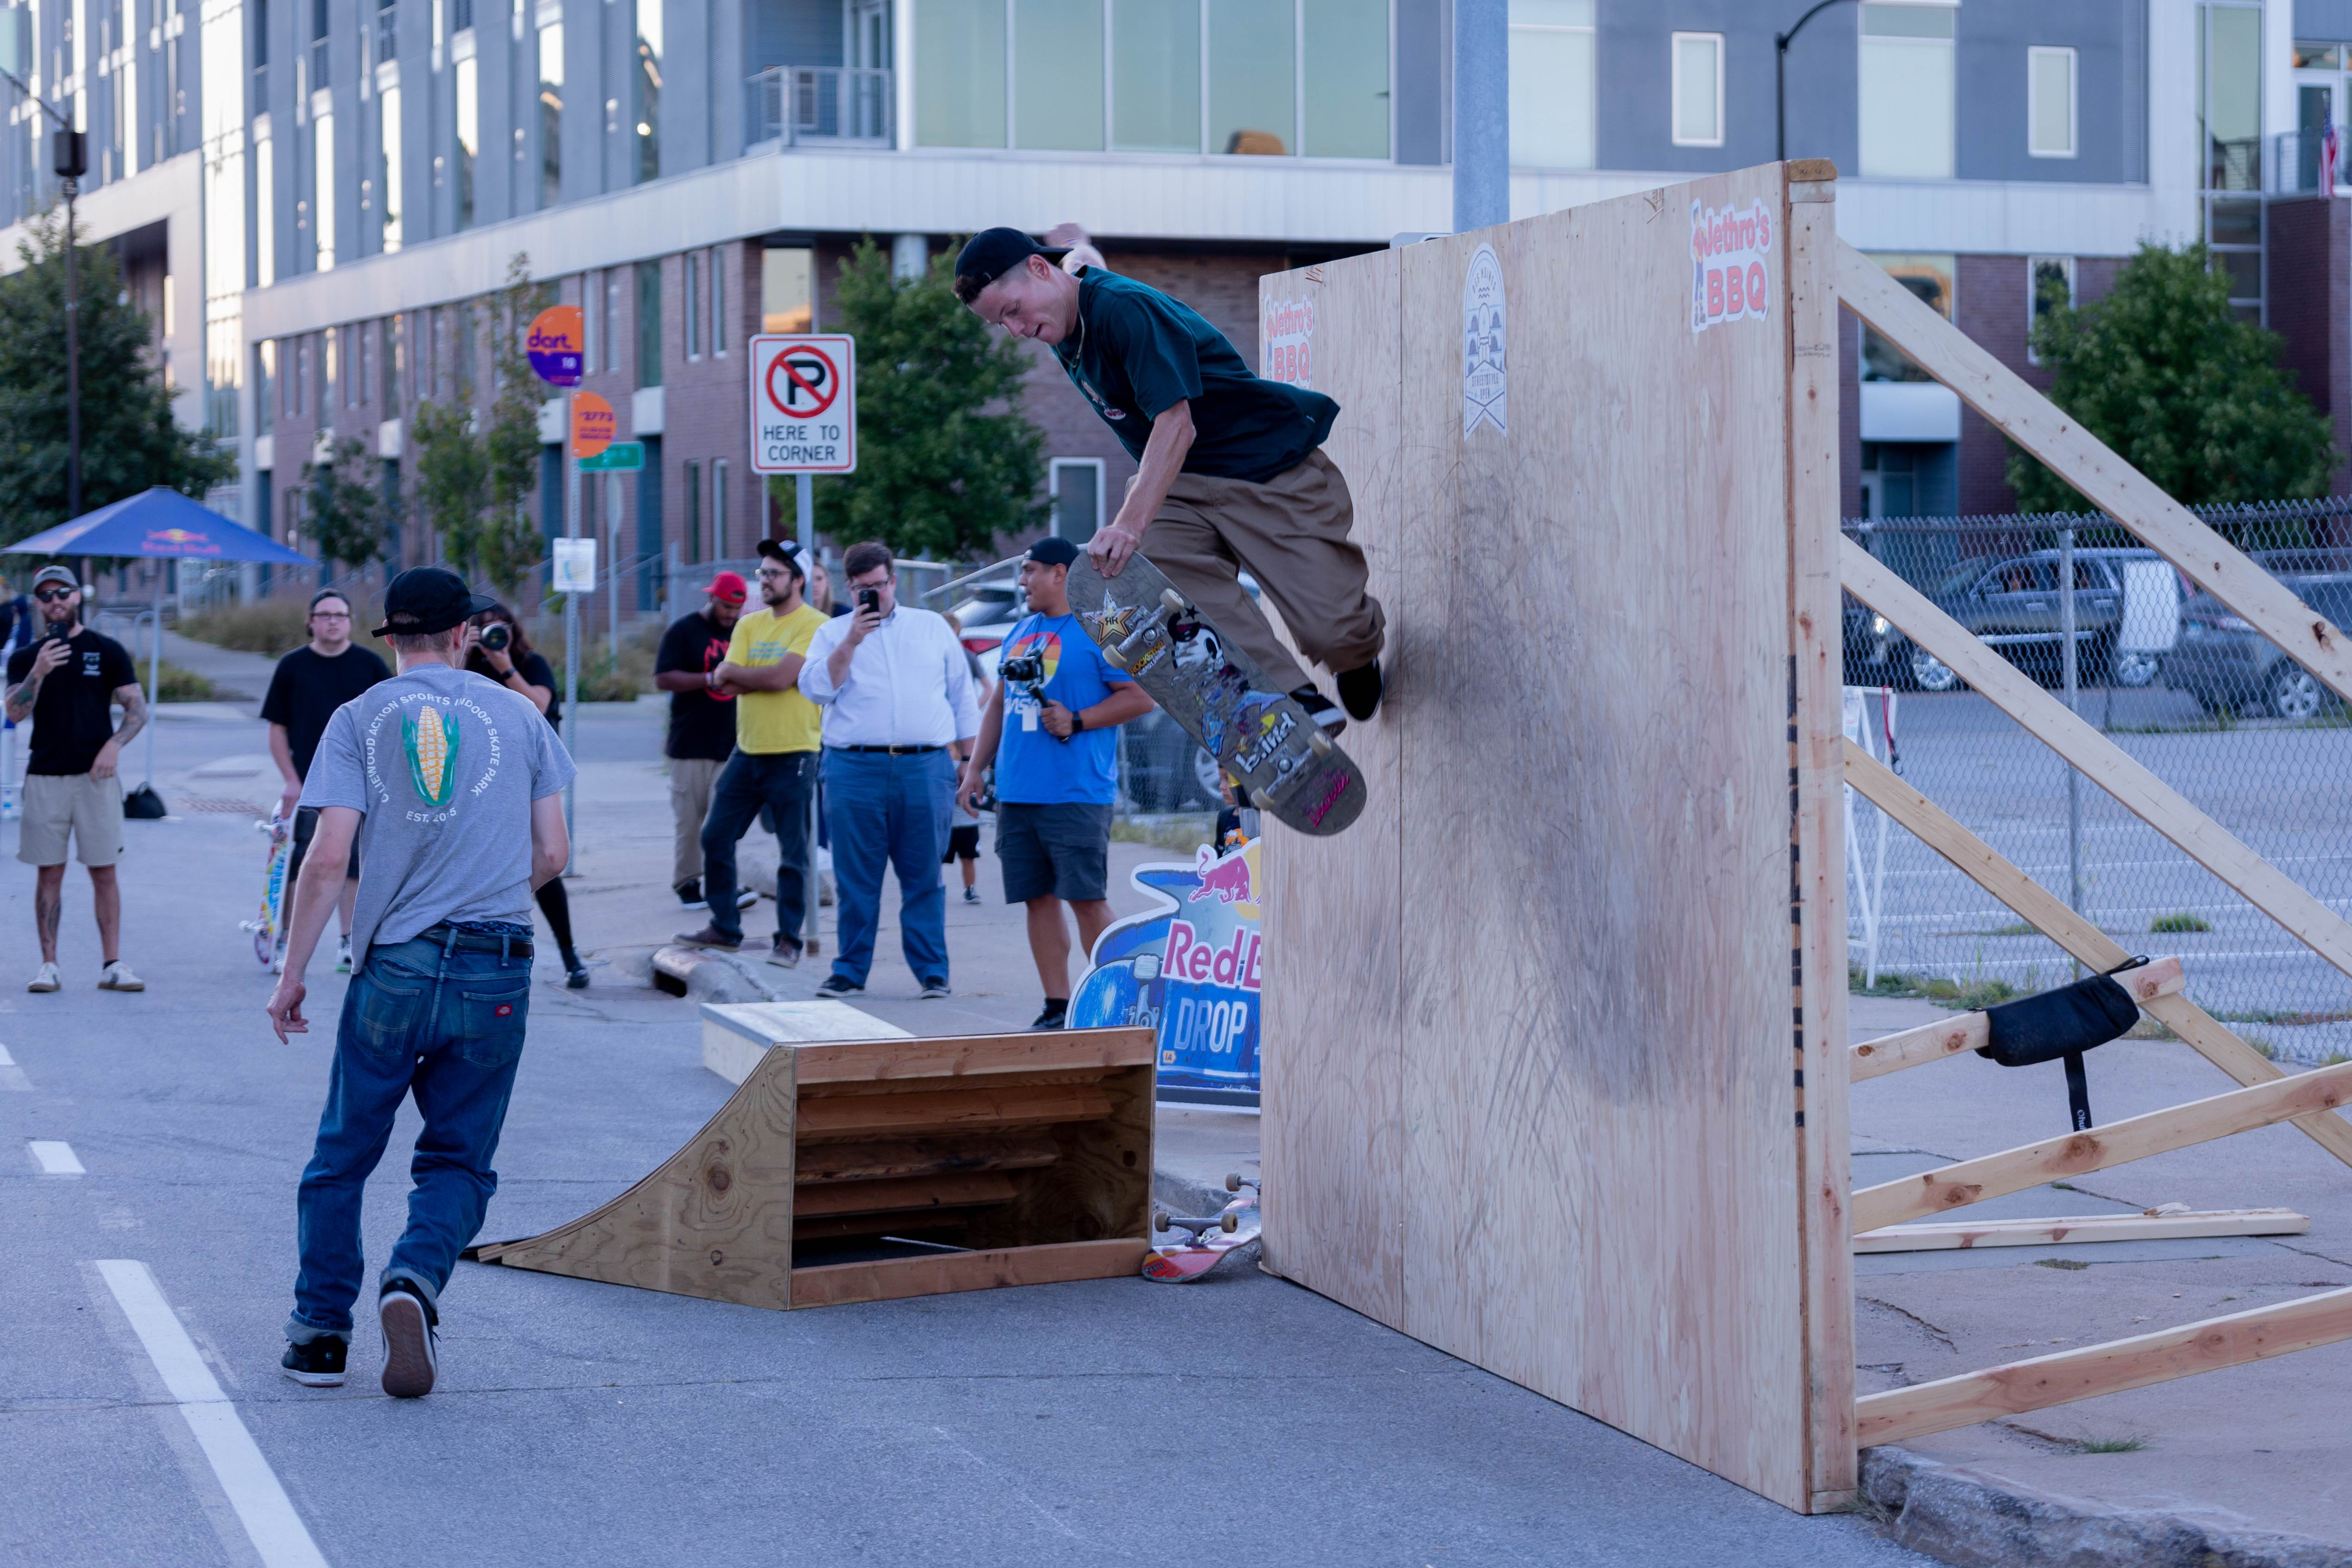 Des Moines Streetstyle Open 2021 - Jake on the Wall